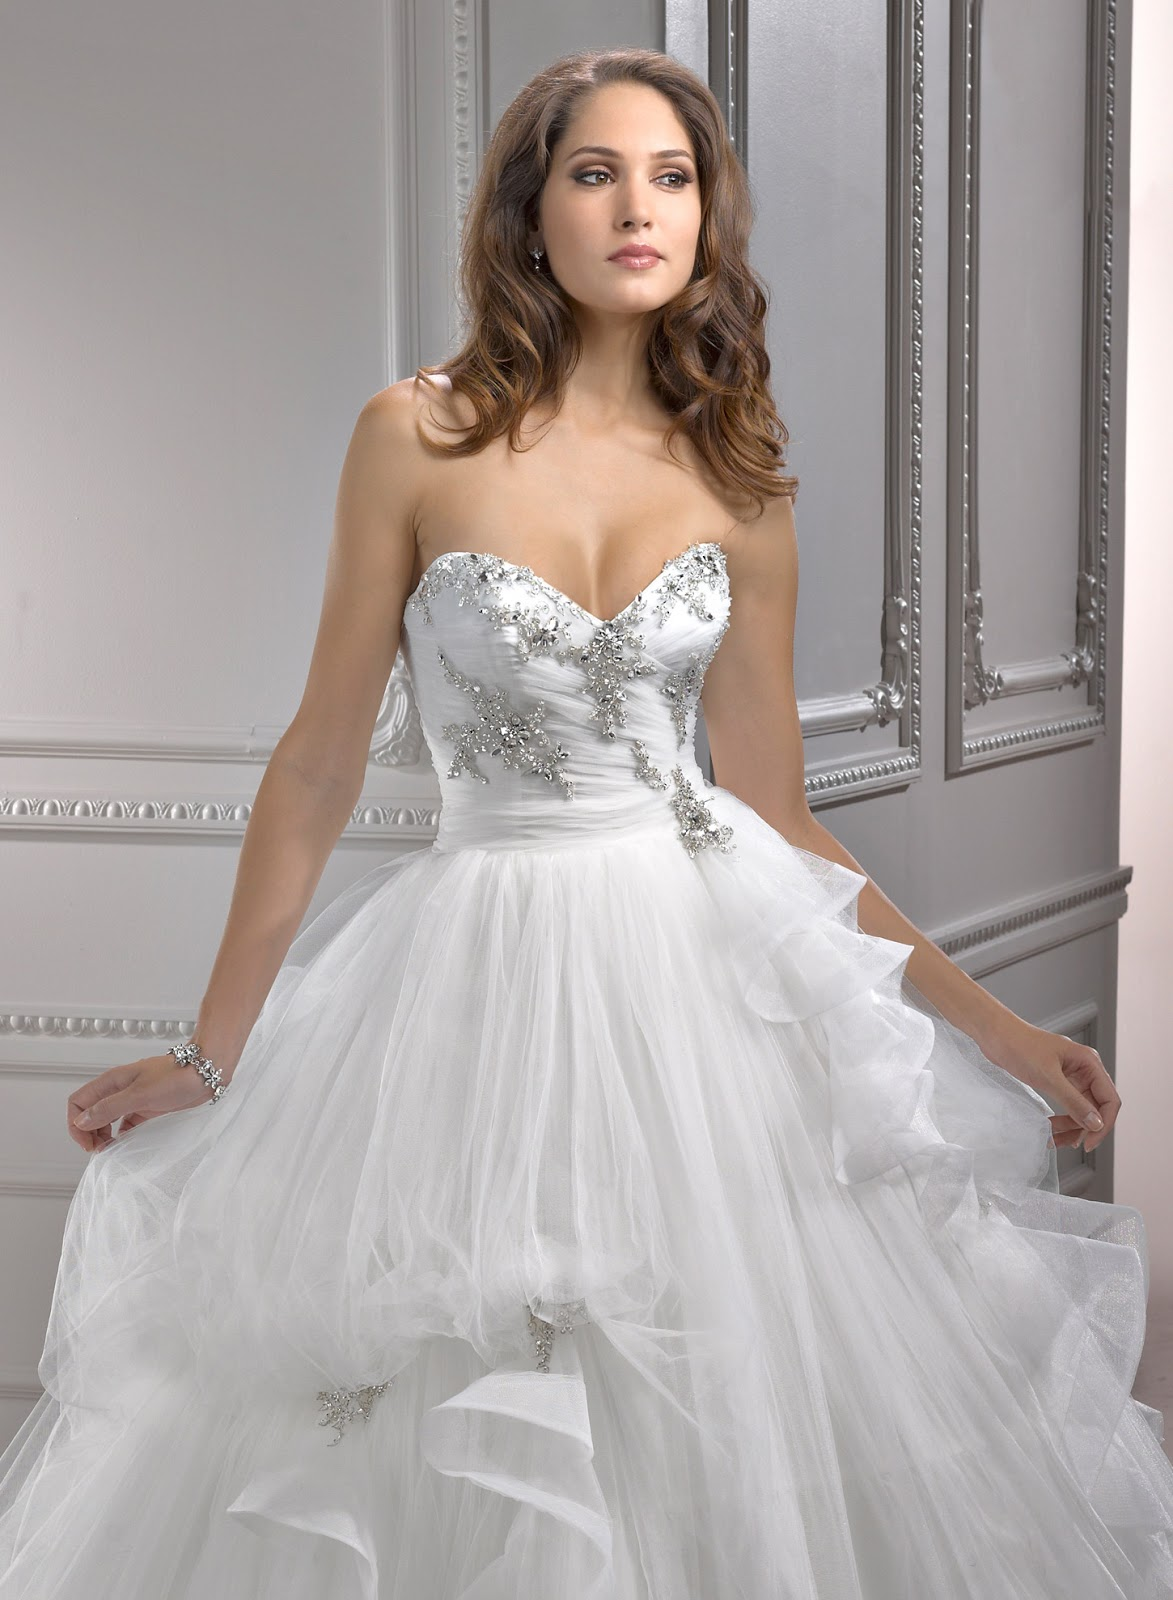 wedding litoon wedding dresses 2013. Black Bedroom Furniture Sets. Home Design Ideas